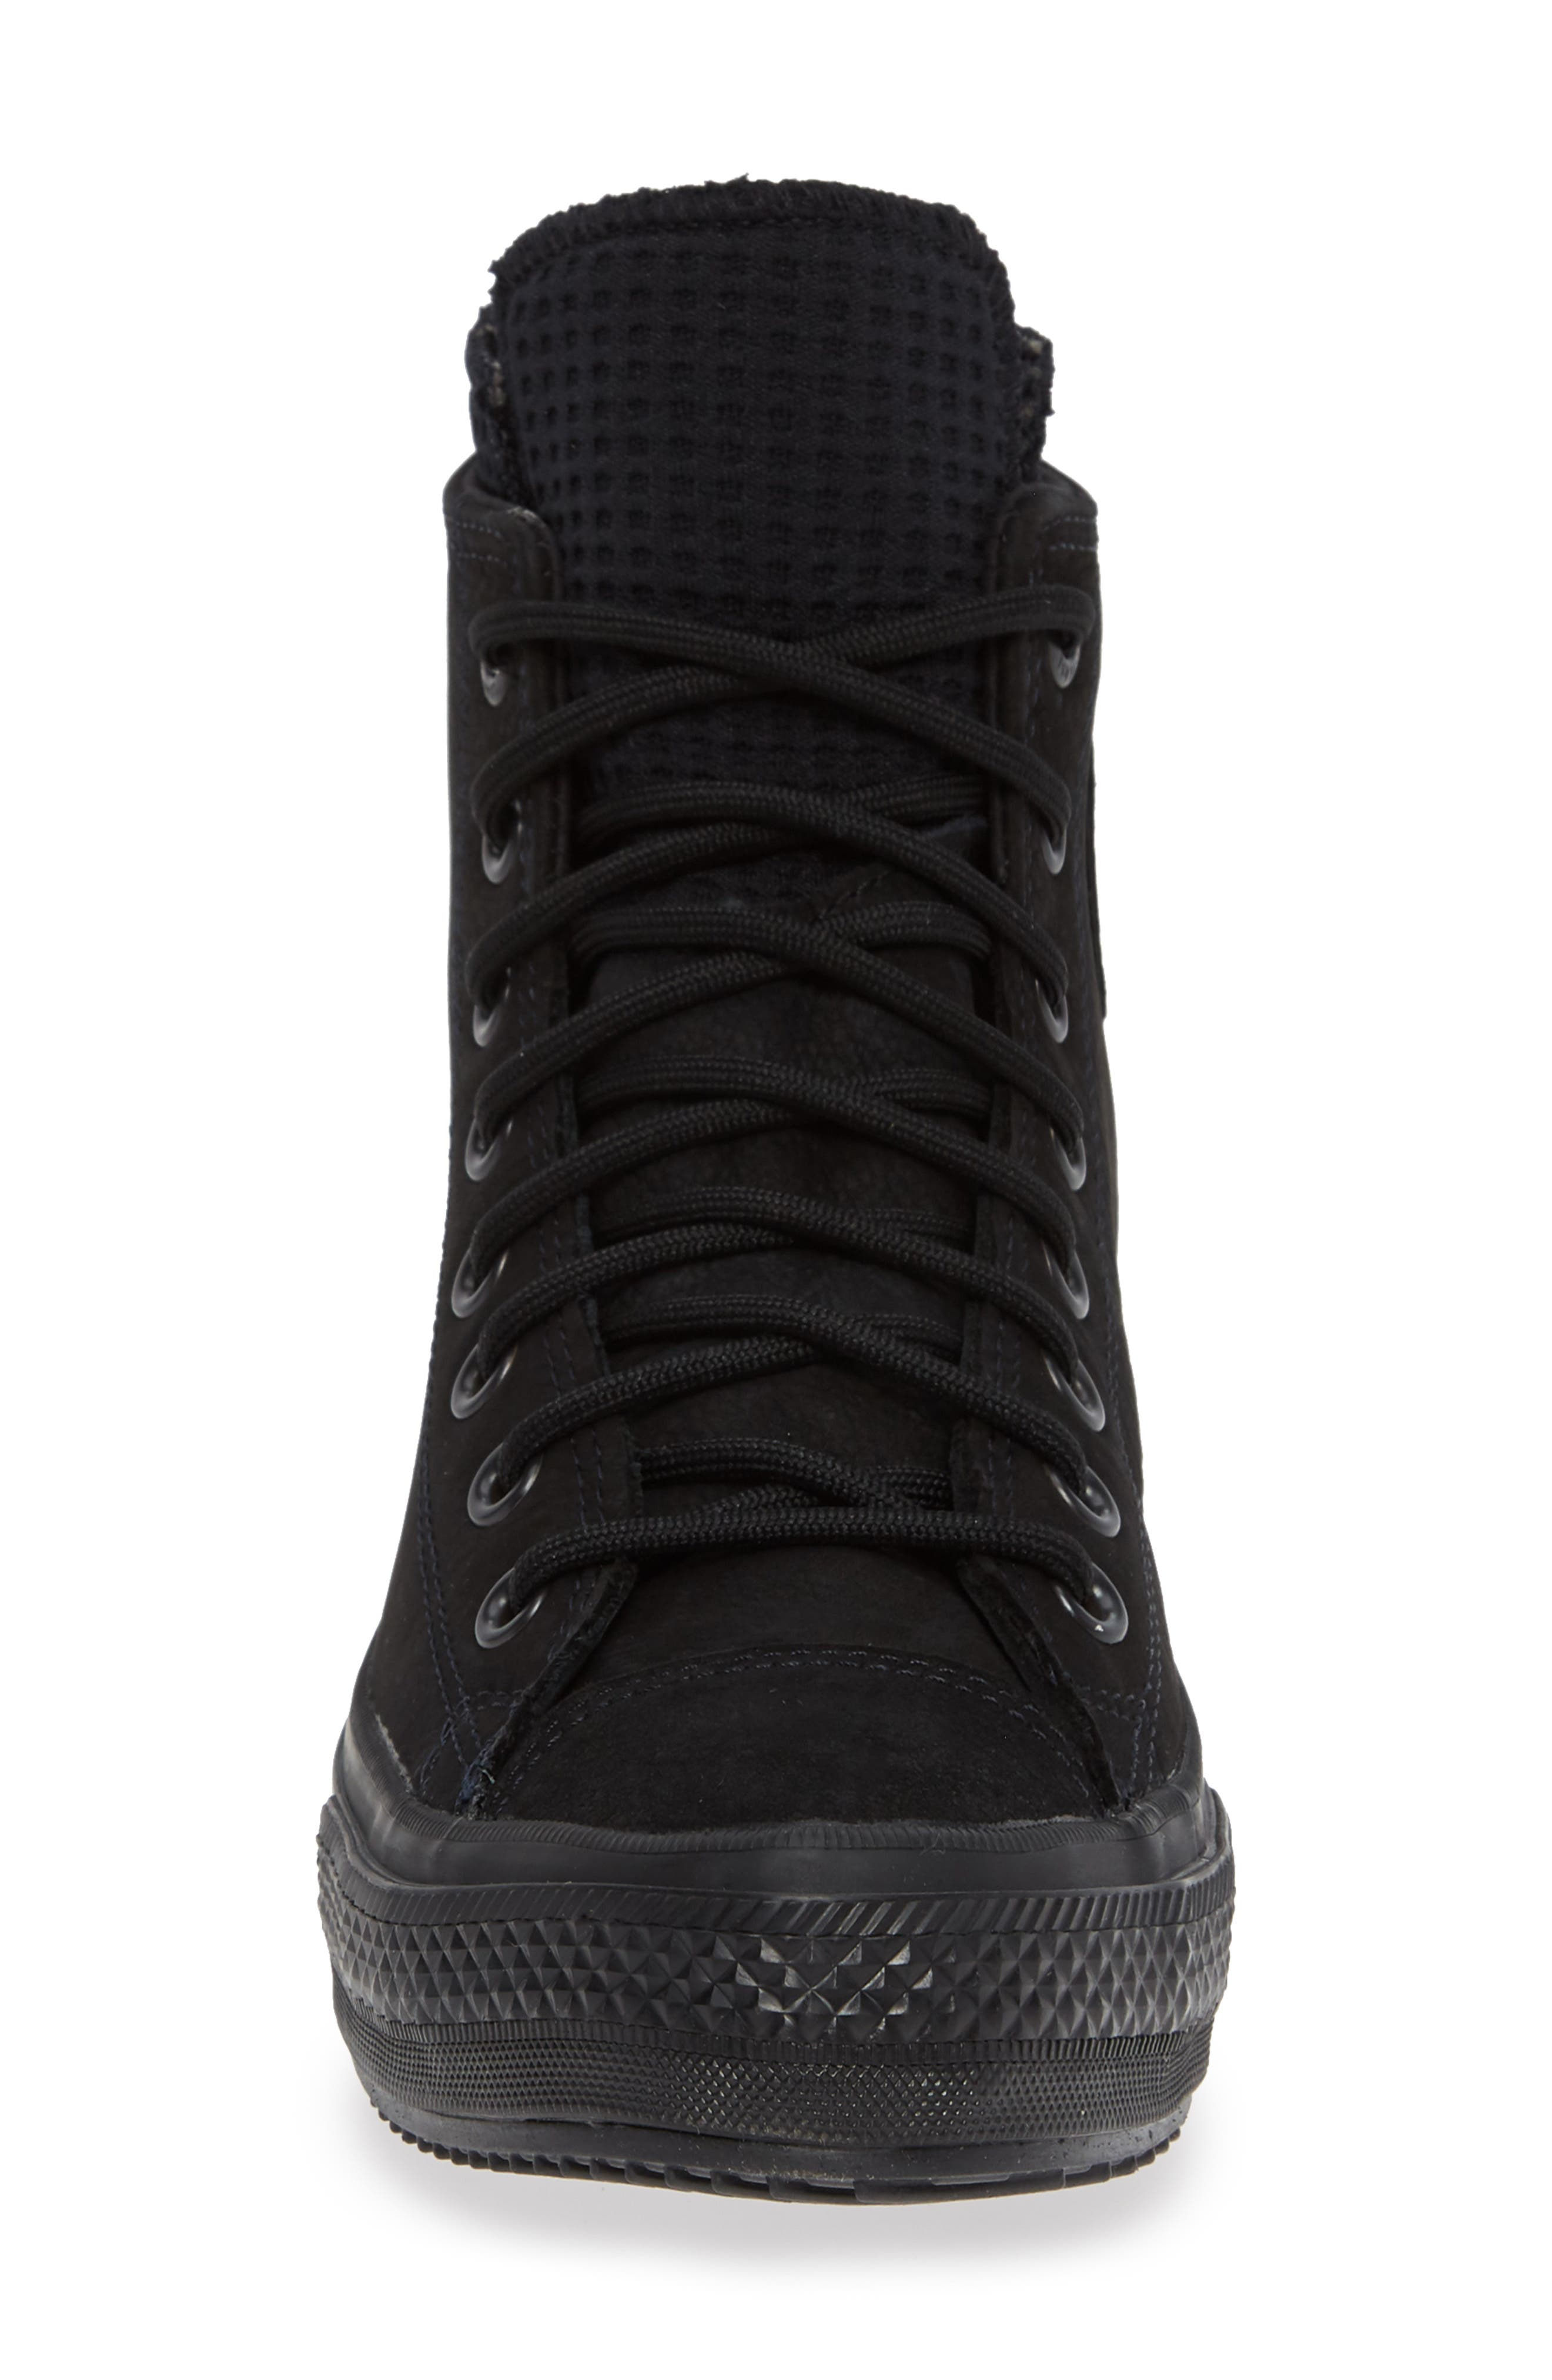 CONVERSE, Chuck Taylor<sup>®</sup> All Star<sup>®</sup> Counter Climate Waterproof Sneaker, Alternate thumbnail 4, color, BLACK/ BLACK/ BLACK